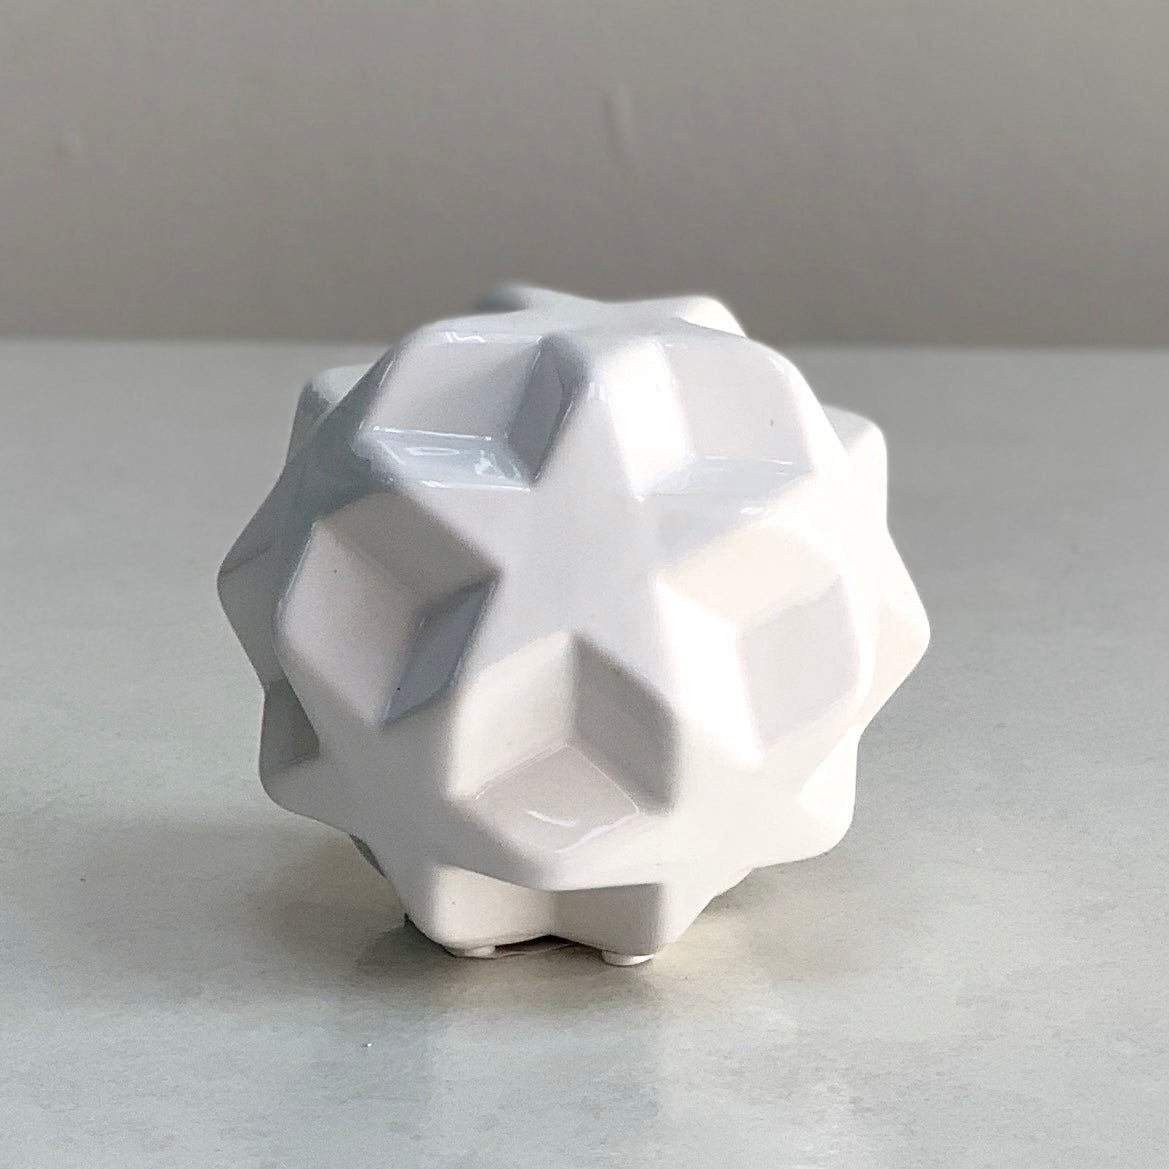 White Ceramic Star Ball